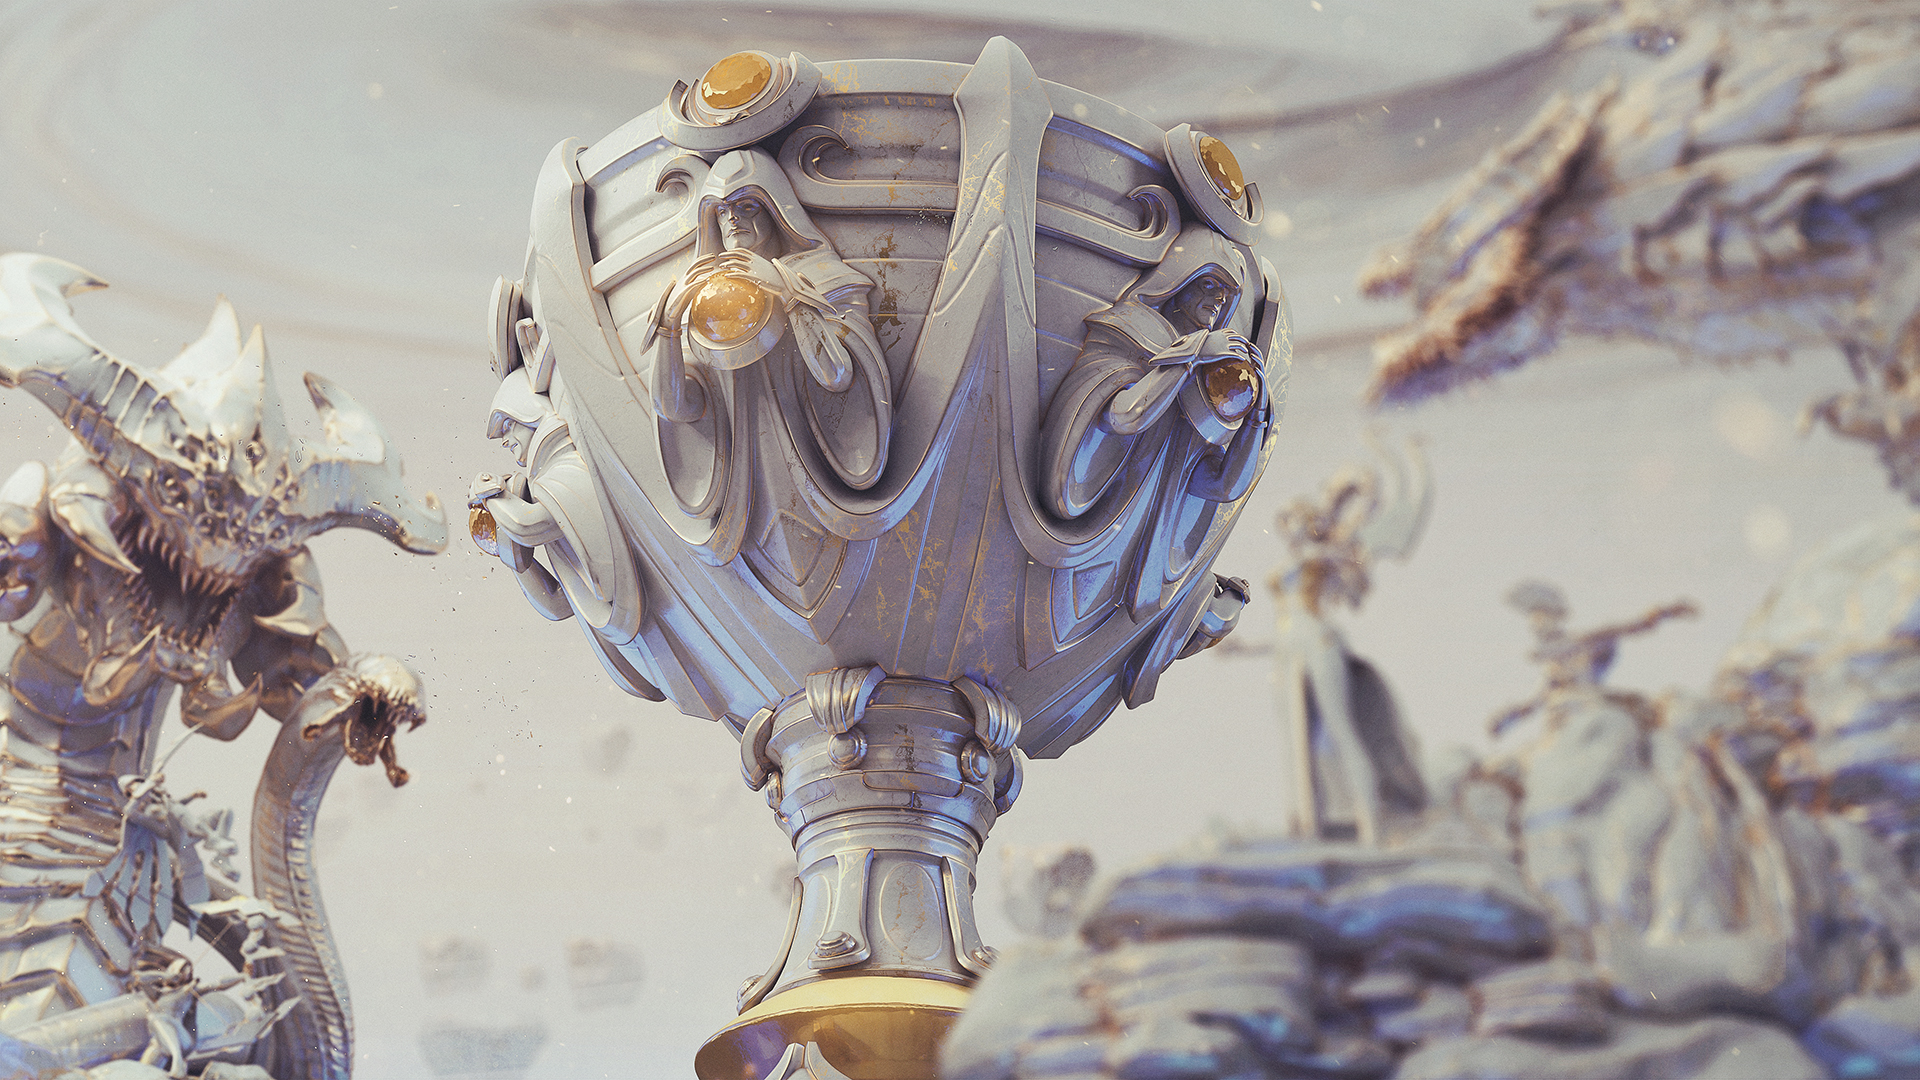 The League of Legends Summoner's Cup sits, encased in marble, surrounded by Baron Nashor and several champions.